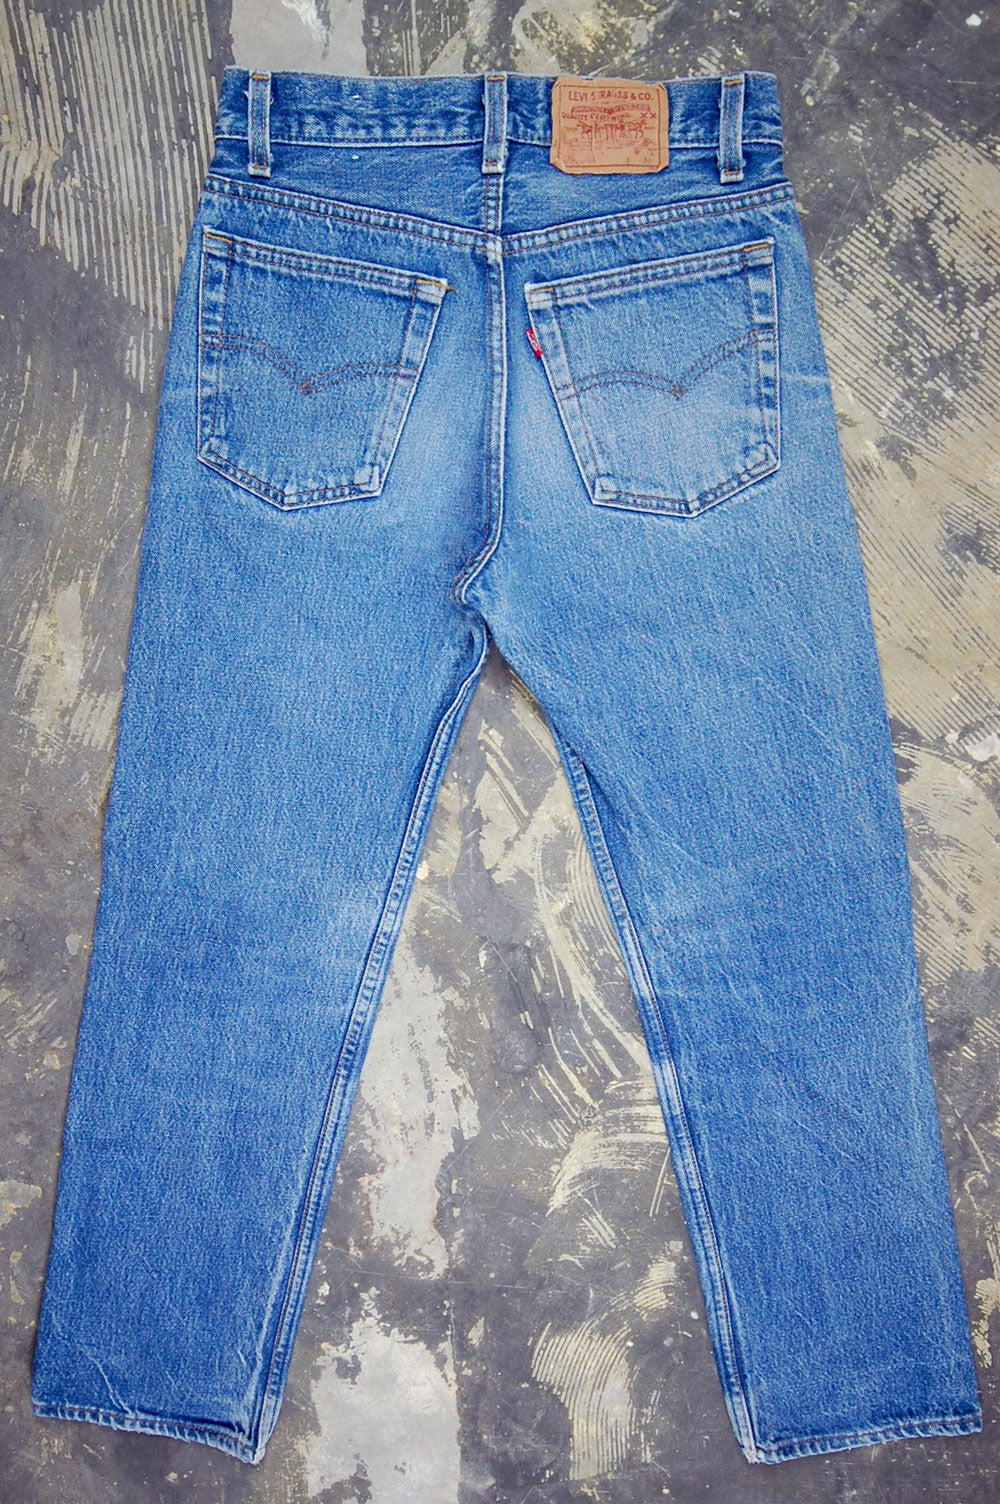 Vintage Levi's 701 Student Fit USA Transitional Whiskered & Feathered Denim Jeans